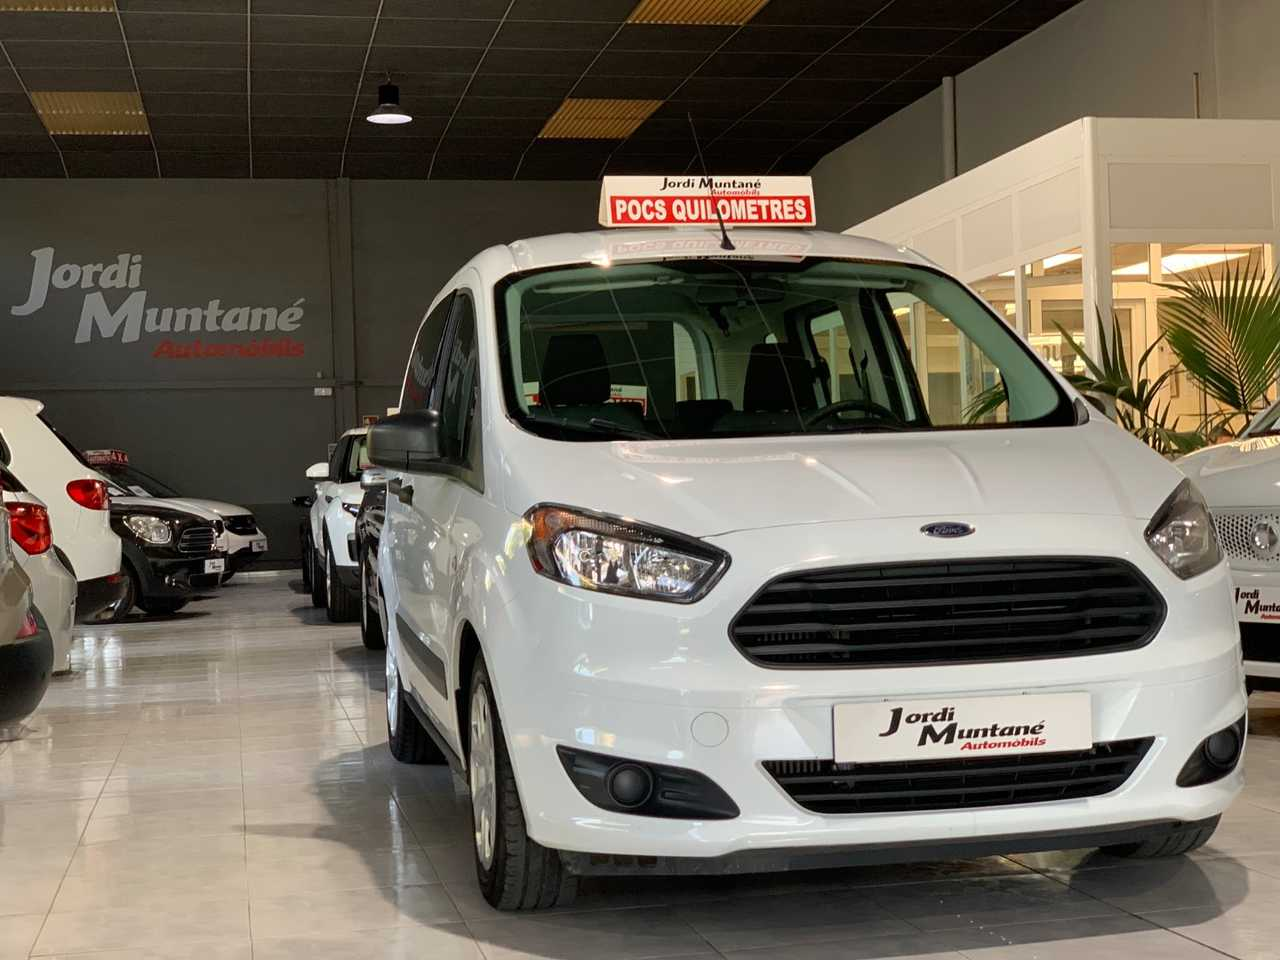 Ford Tourneo Courier 1.0 Ecoboost 100cv -. '' Ambiente '' .- Manual 5 velocidades -.   - Foto 1